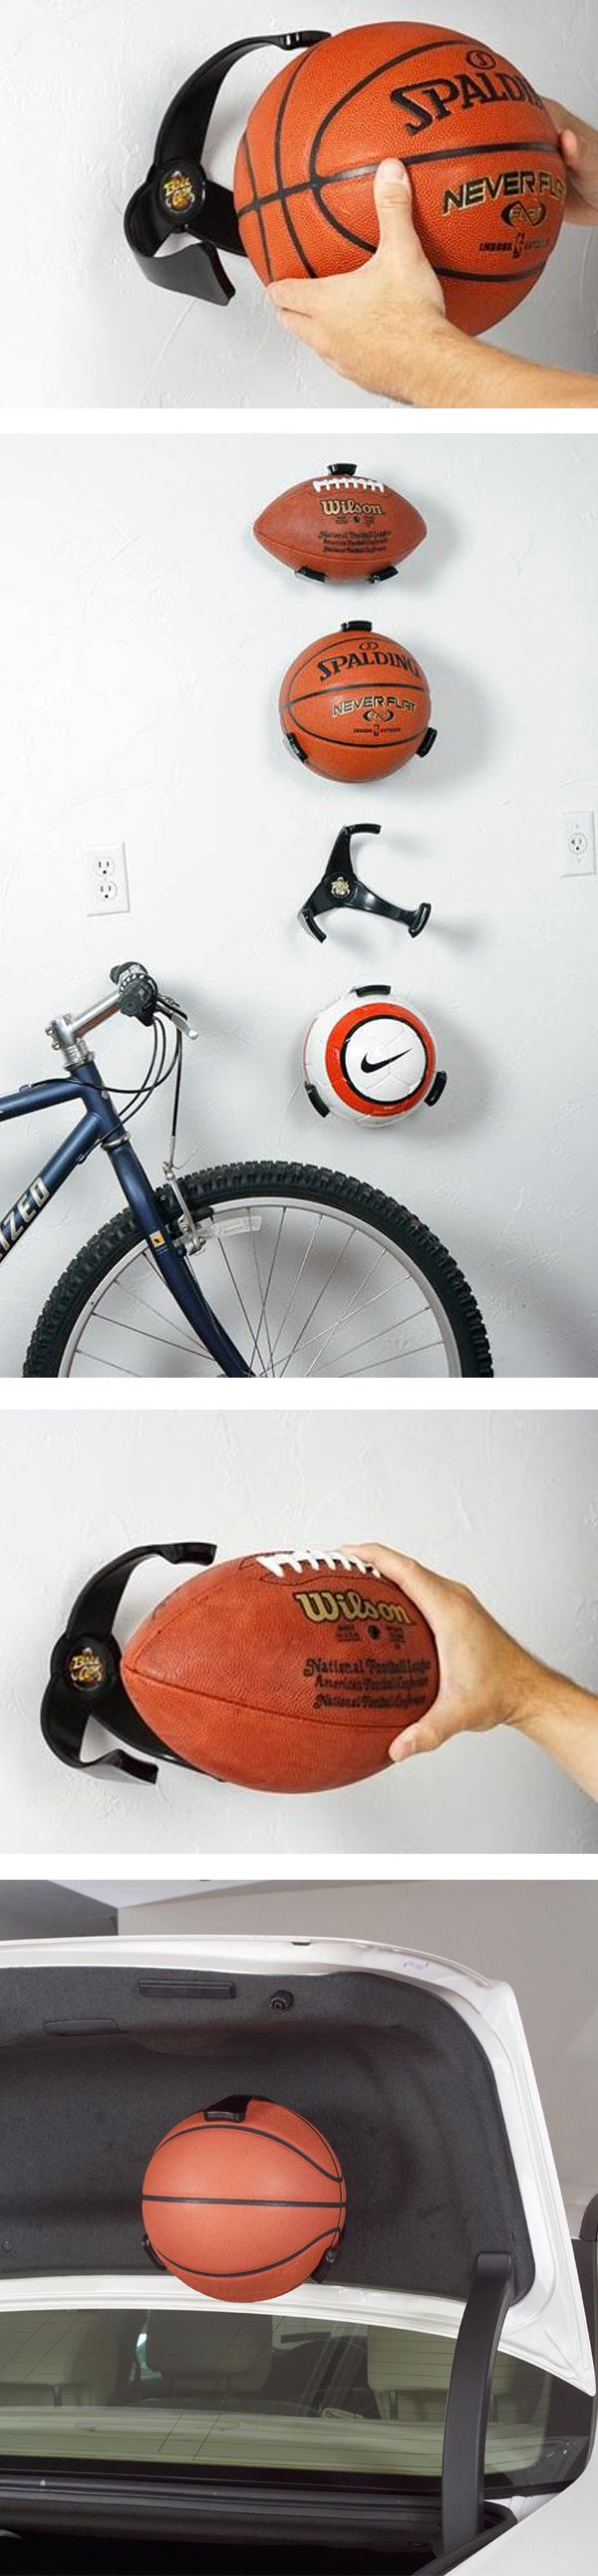 The Ball Claw. Mounts basketballs, soccer, even footballs to the wall. Great way to make use of a closet wall!